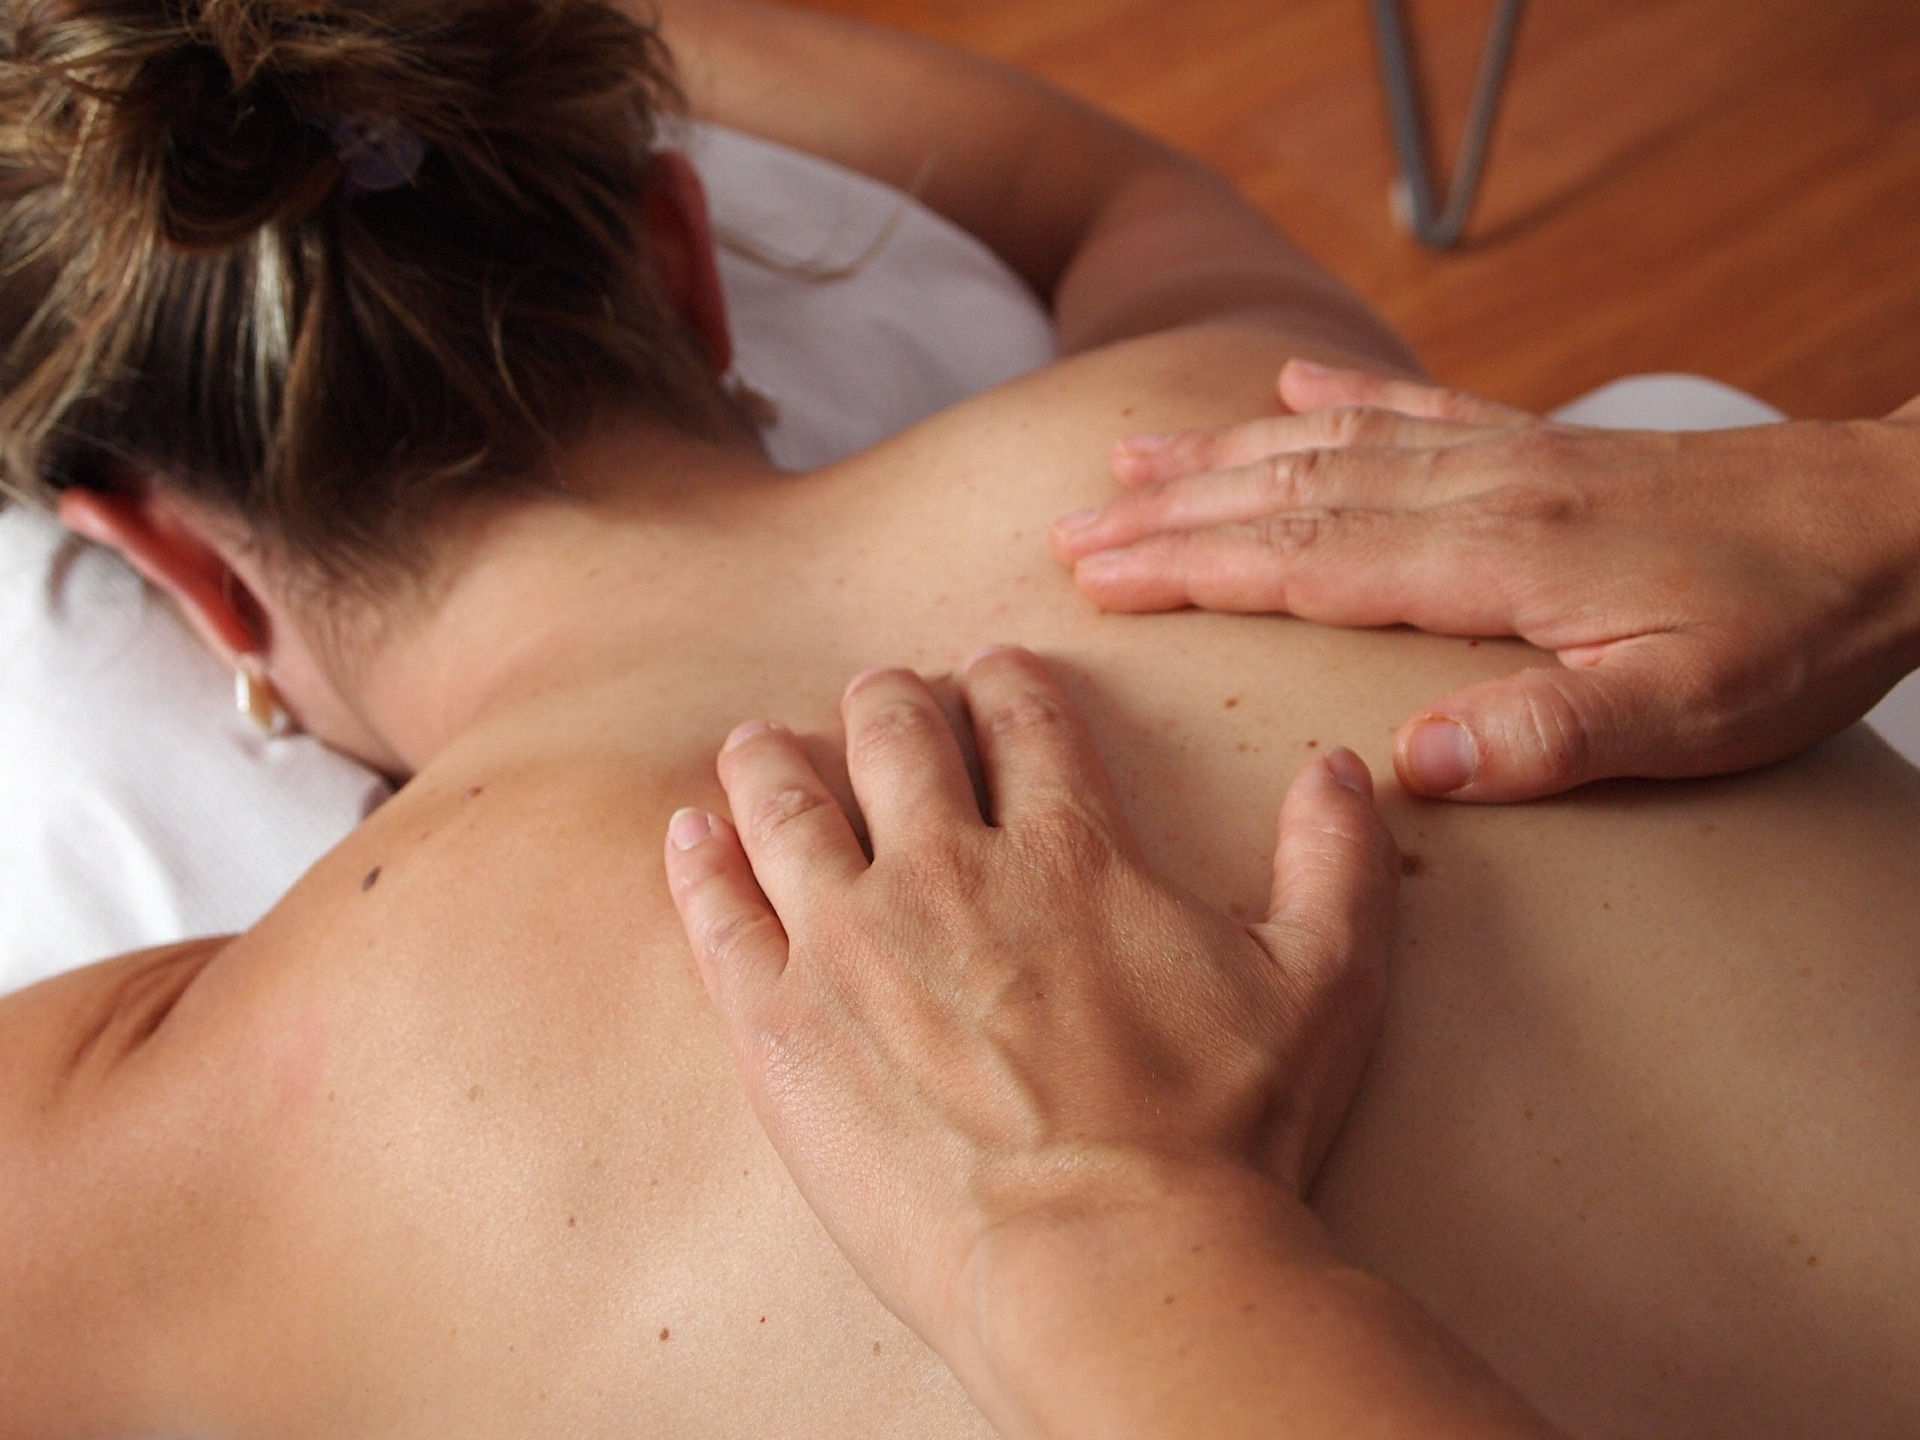 Who will benefit from Swedish Massage? - Regular Swedish Massage can help improve relaxation and reduce both physical and emotional stress. It is beneficial for anyone looking to promote health and wellbeing. Regular massage can help keep muscle tension at bay, relieve depression, and also help to manage pain for a range of chronic conditions such as arthritis and fibromyalgia.Specific benefits include:*promoting physical and emotional relaxation*increasing oxygen flow in the blood* releasing toxins from muscles* shortening recovery time from muscular strain* increasing circulation without increasing heart load* stretching the ligaments and tendons keeping them supple and pliable* stimulating the skin and nervous system* soothing nerves